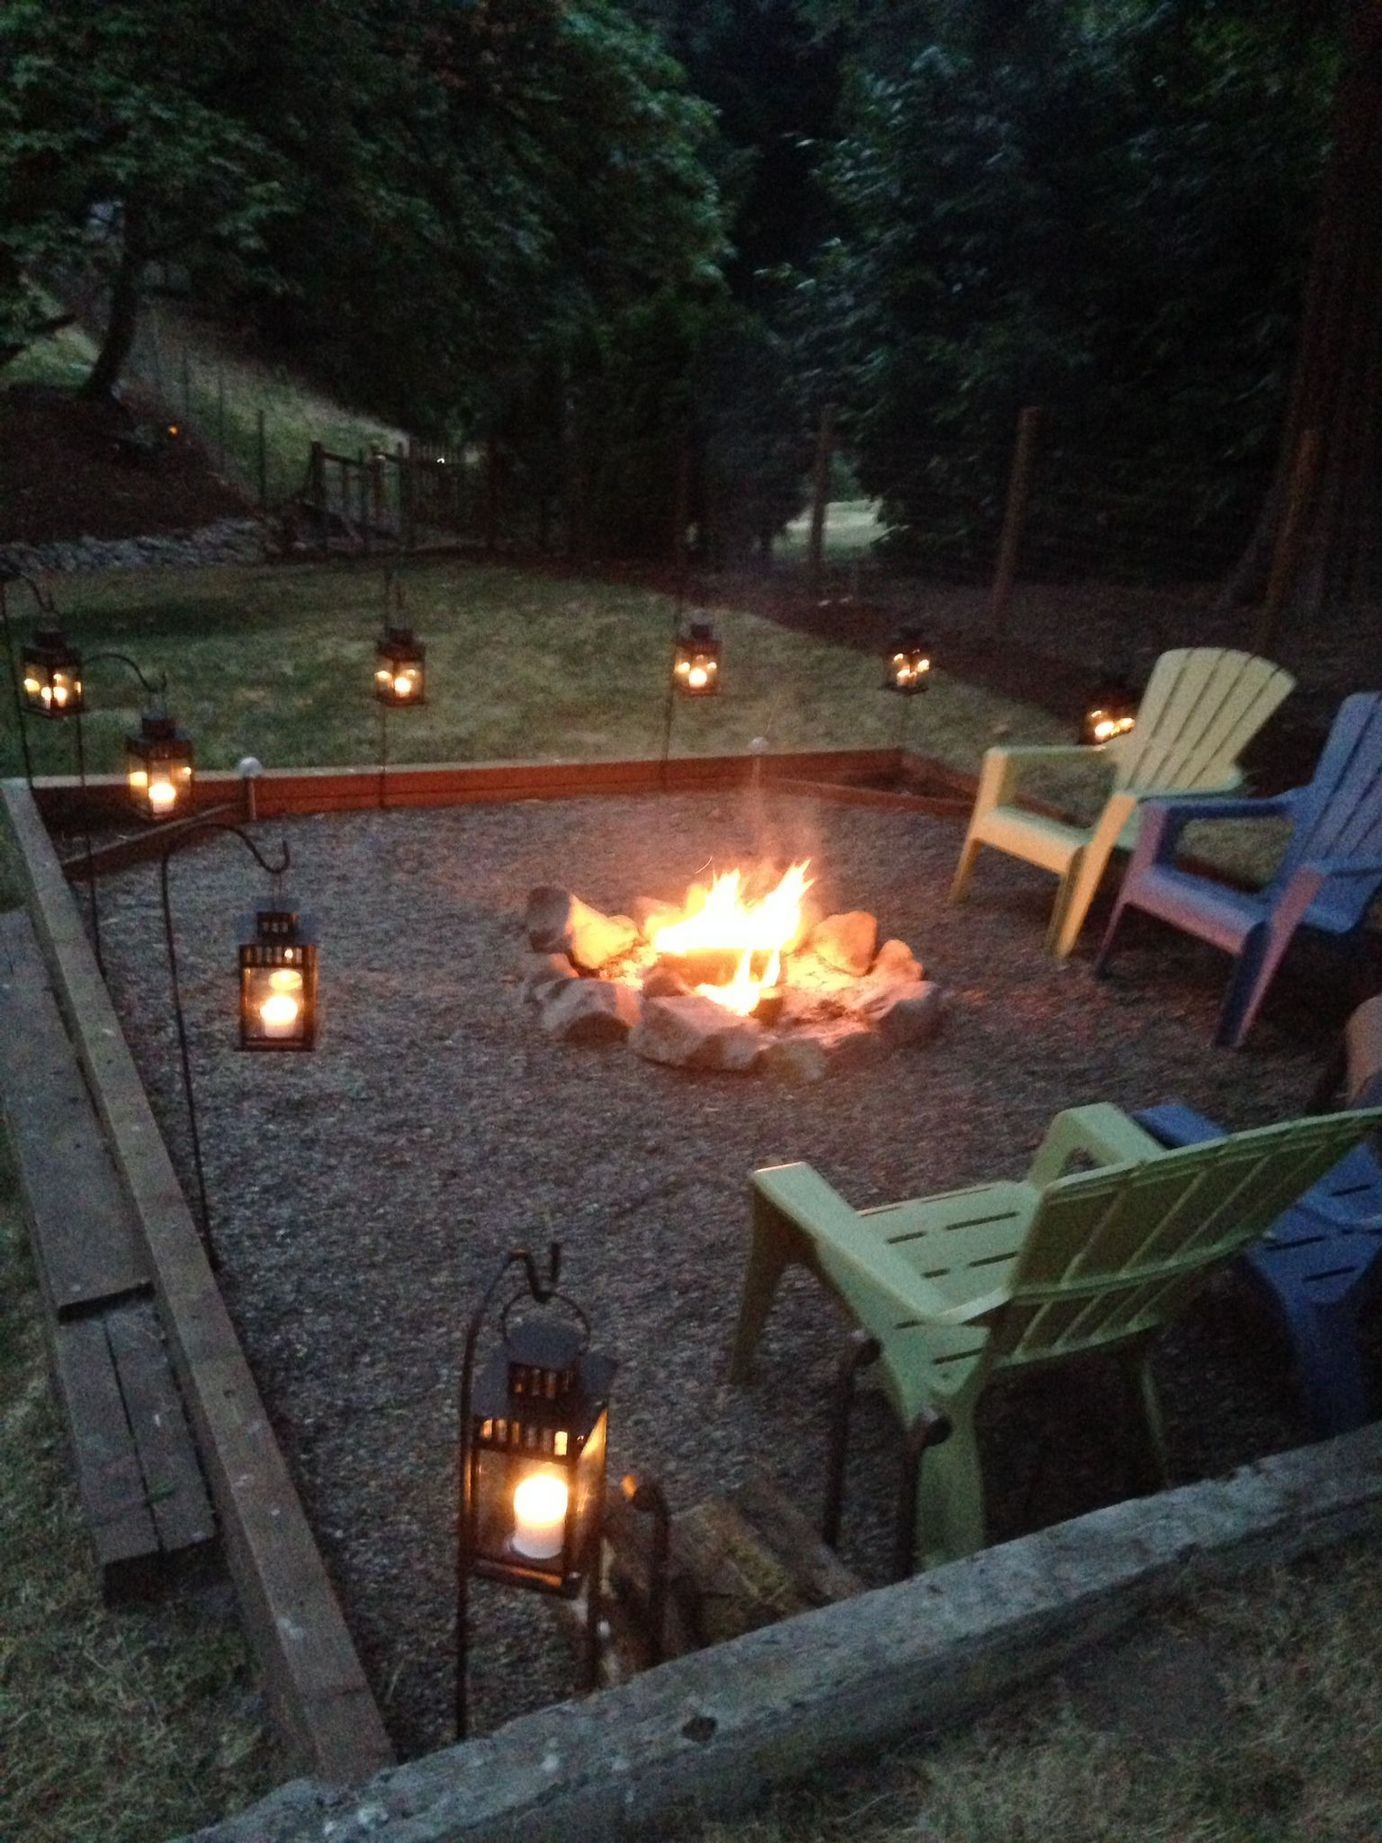 60 fire pit plans & ideas to make happy with your family ...